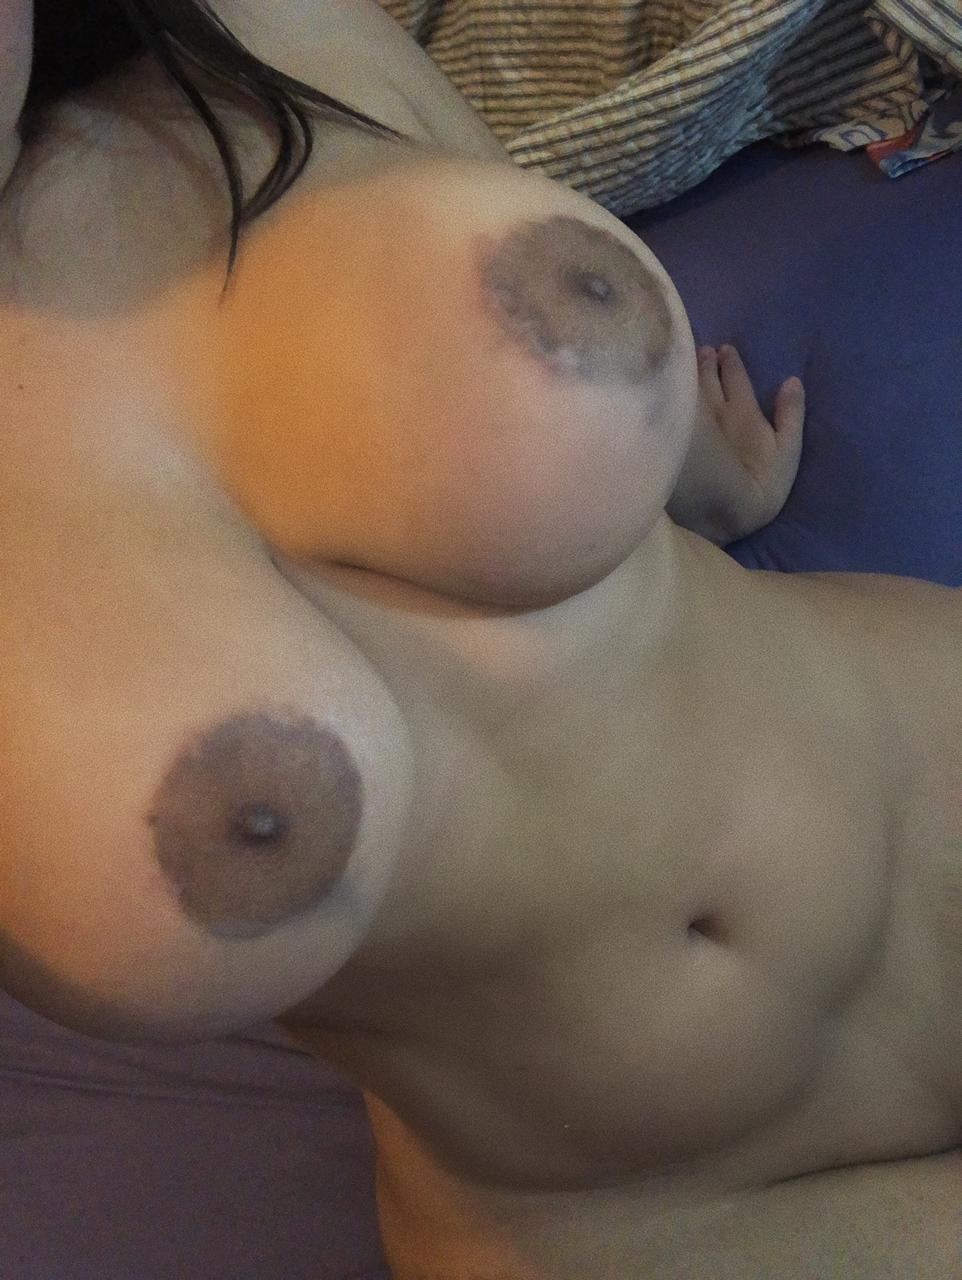 Victoria Matosa Nude Onlyfans Leaked! 0004